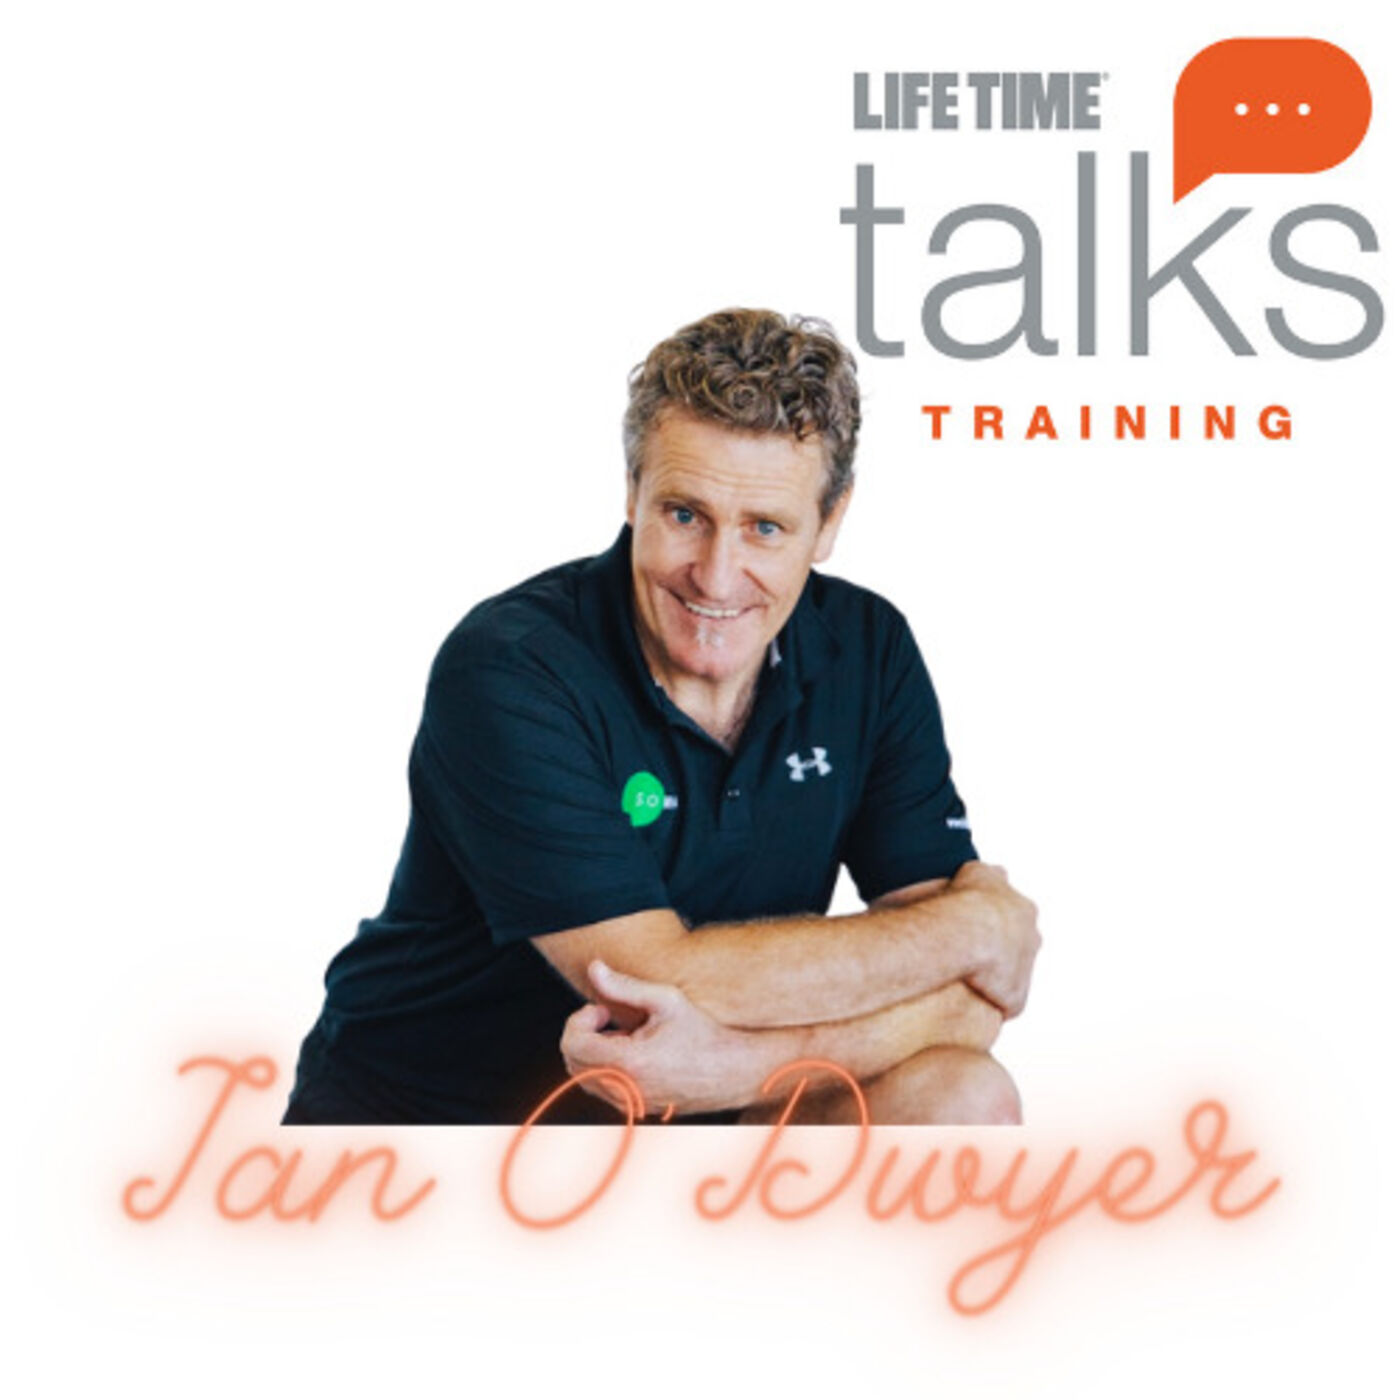 Episode #71 - Ian O'Dwyer - Using Self Care tissue management & Play to improve health & well-being